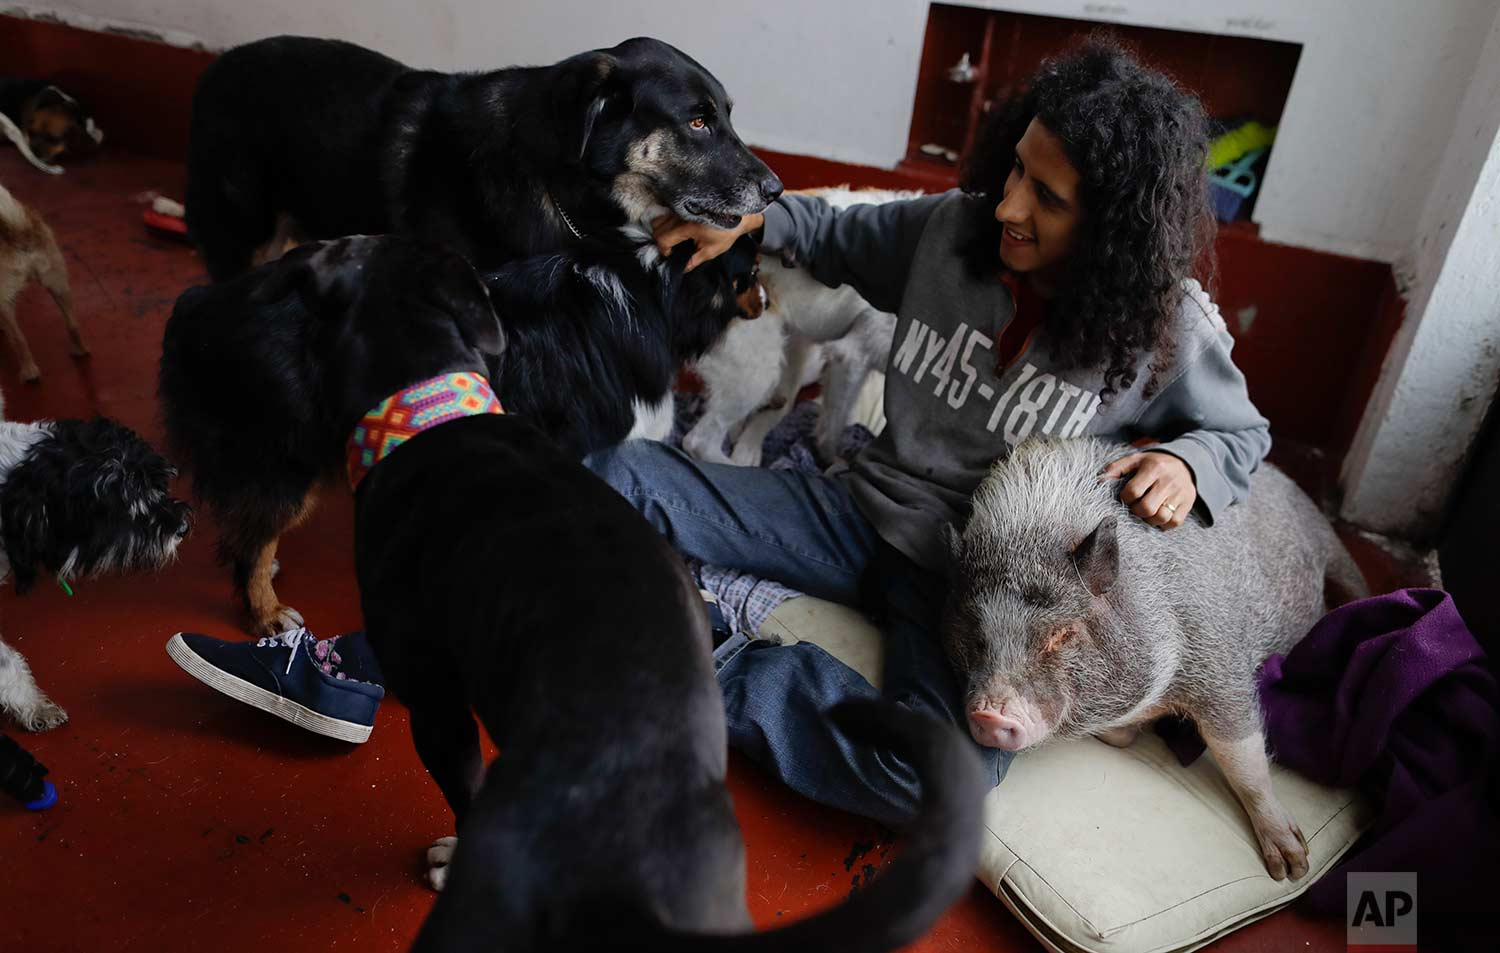 Jair Luzan interacts with some of his pets as they relax in their temporary home in the aftermath of a 7.1-magnitude earthquake, in Mexico City, Friday, Sept. 22, 2017. Luzan and his wife were obligated to abandon their animal rescue home with their 50 dogs and pet pig after rescuers told them that they had a gas leak and needed to leave immediately. (AP Photo/Natacha Pisarenko)